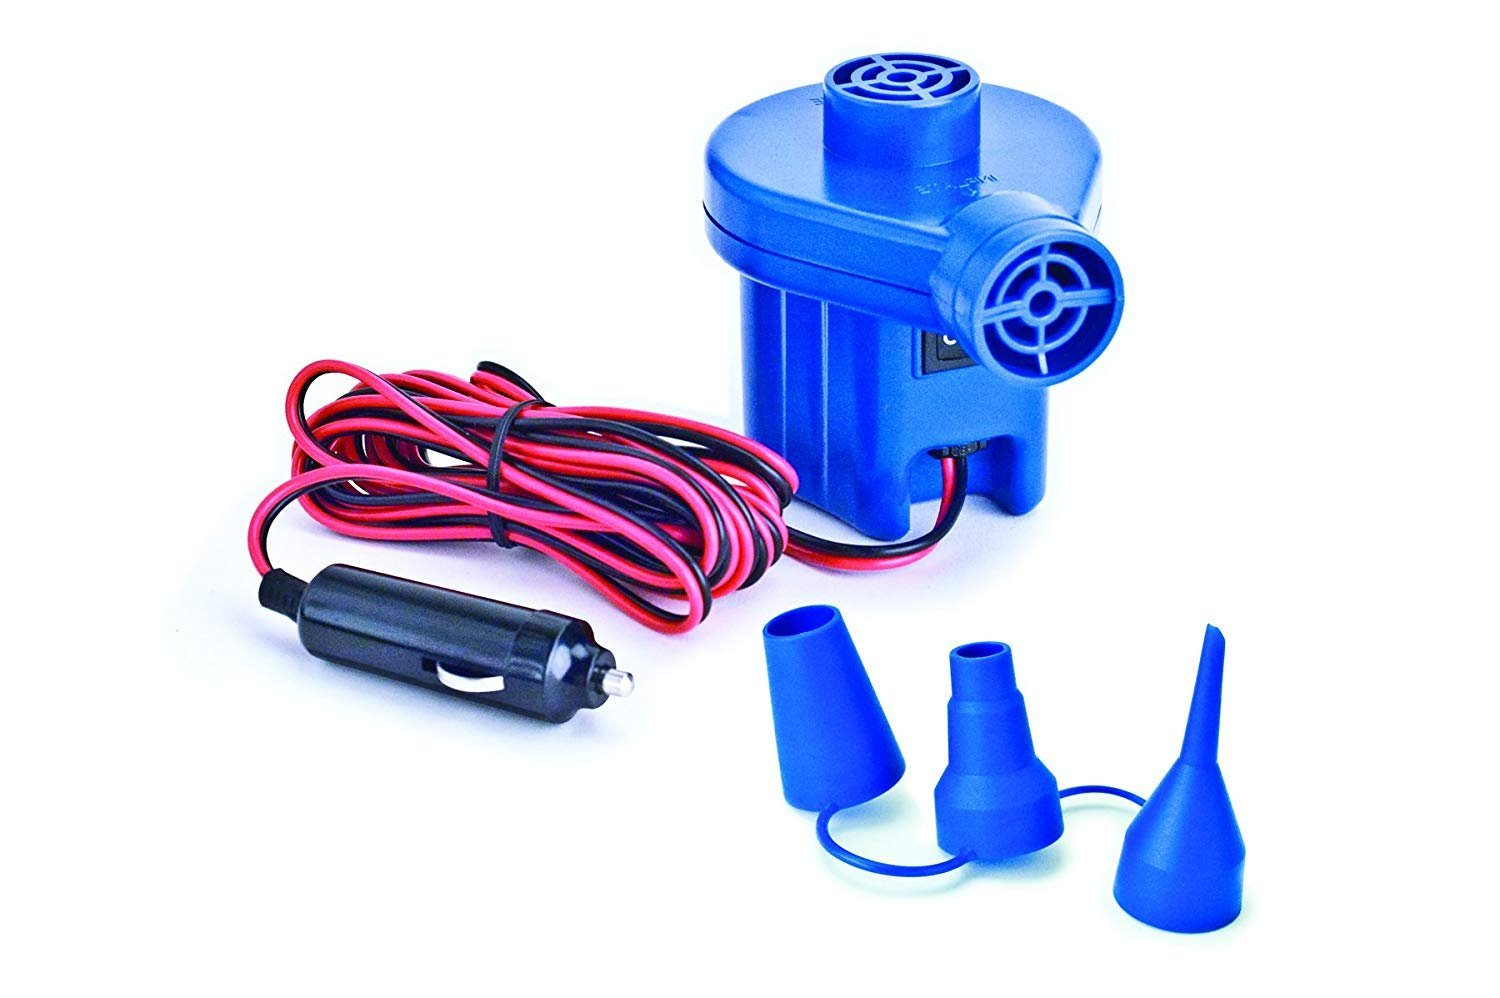 12V Accessory Outlet Electric Pump for Inflatables (Premium pack)